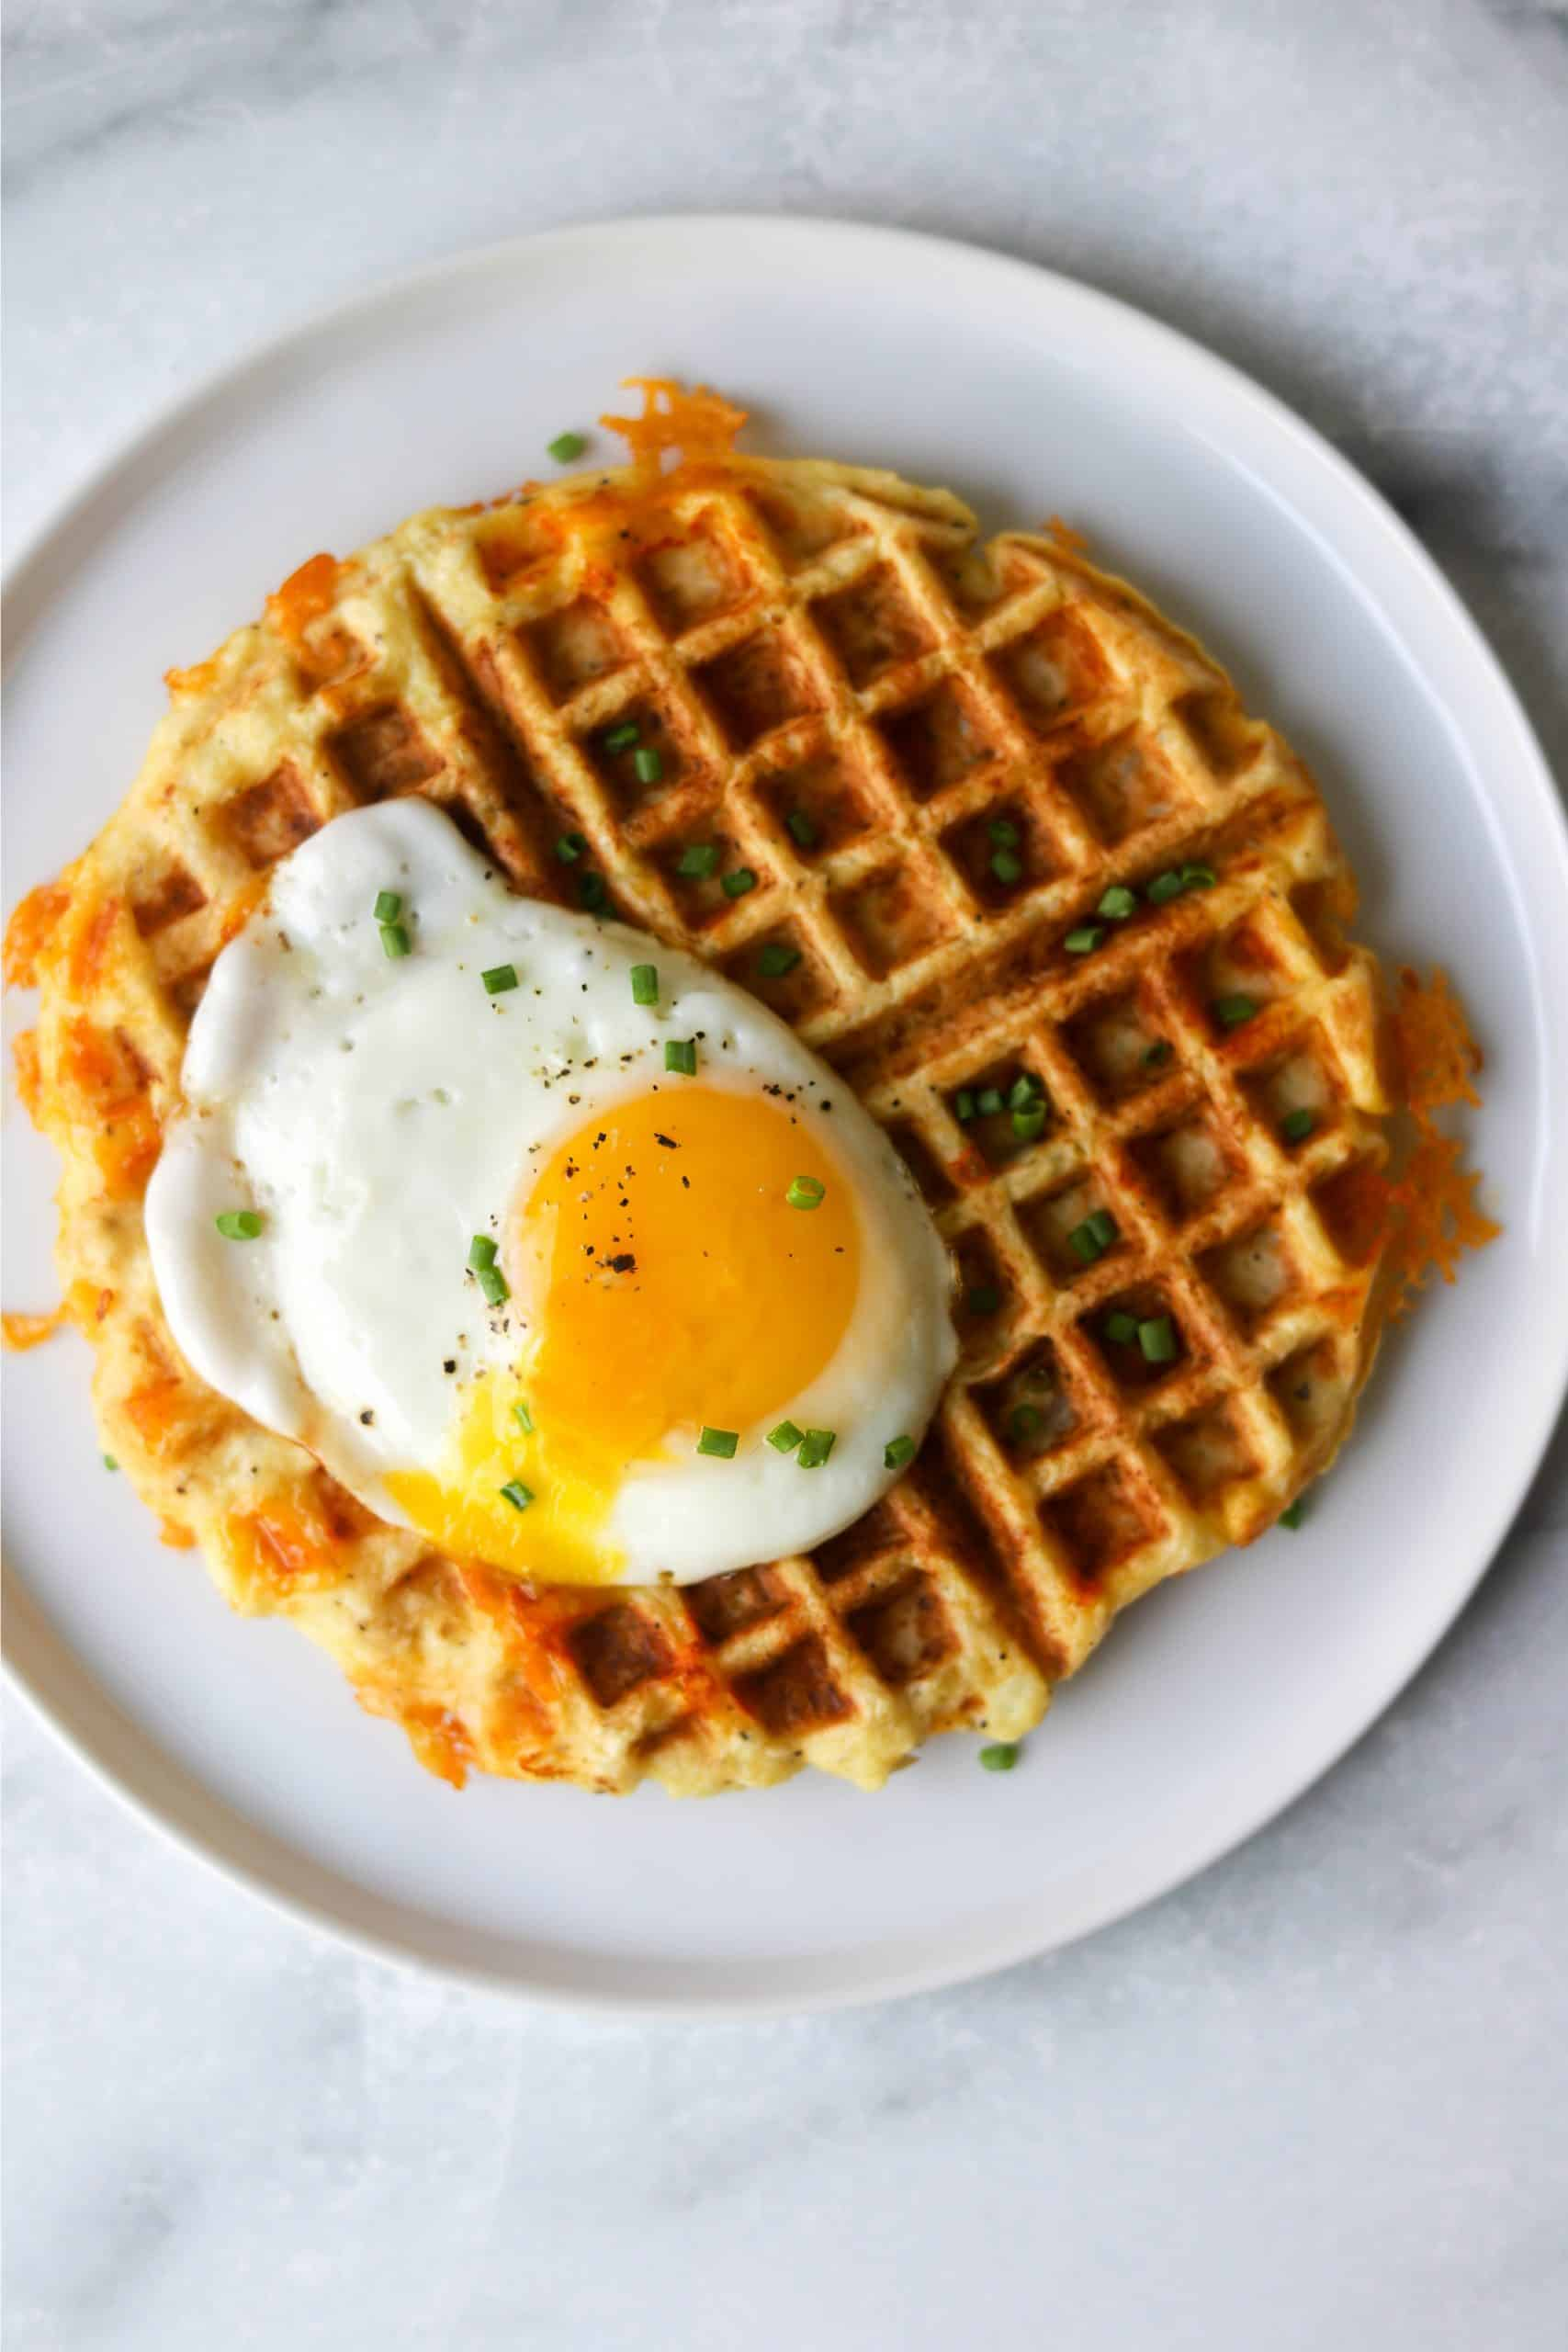 An overhead shot of a cauliflower waffle with a fried egg and chives on top.